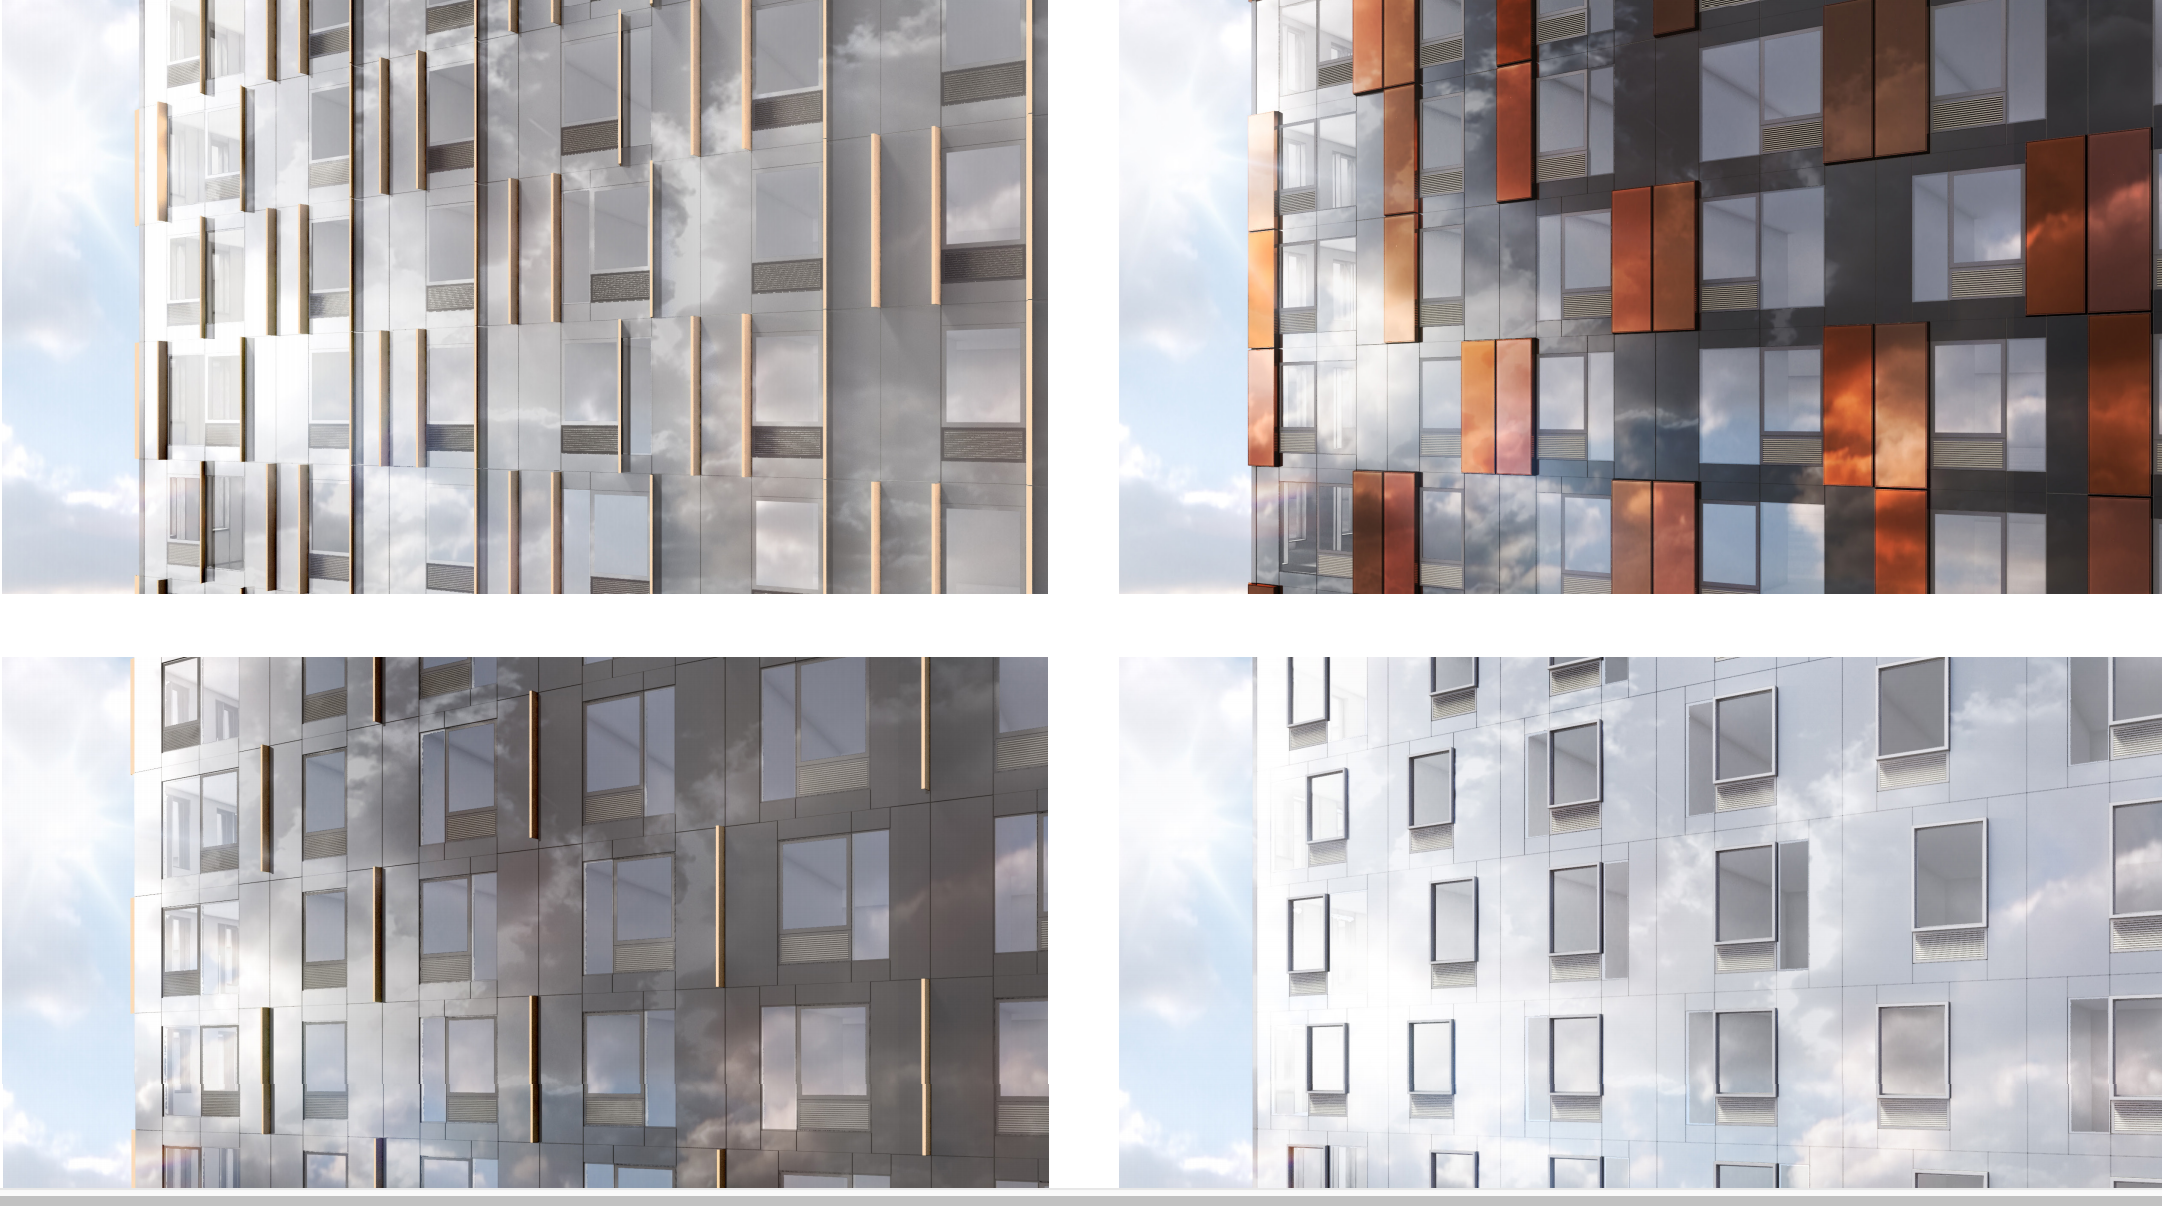 38 Sixth Avenue facade, rendering by SHoP Architects